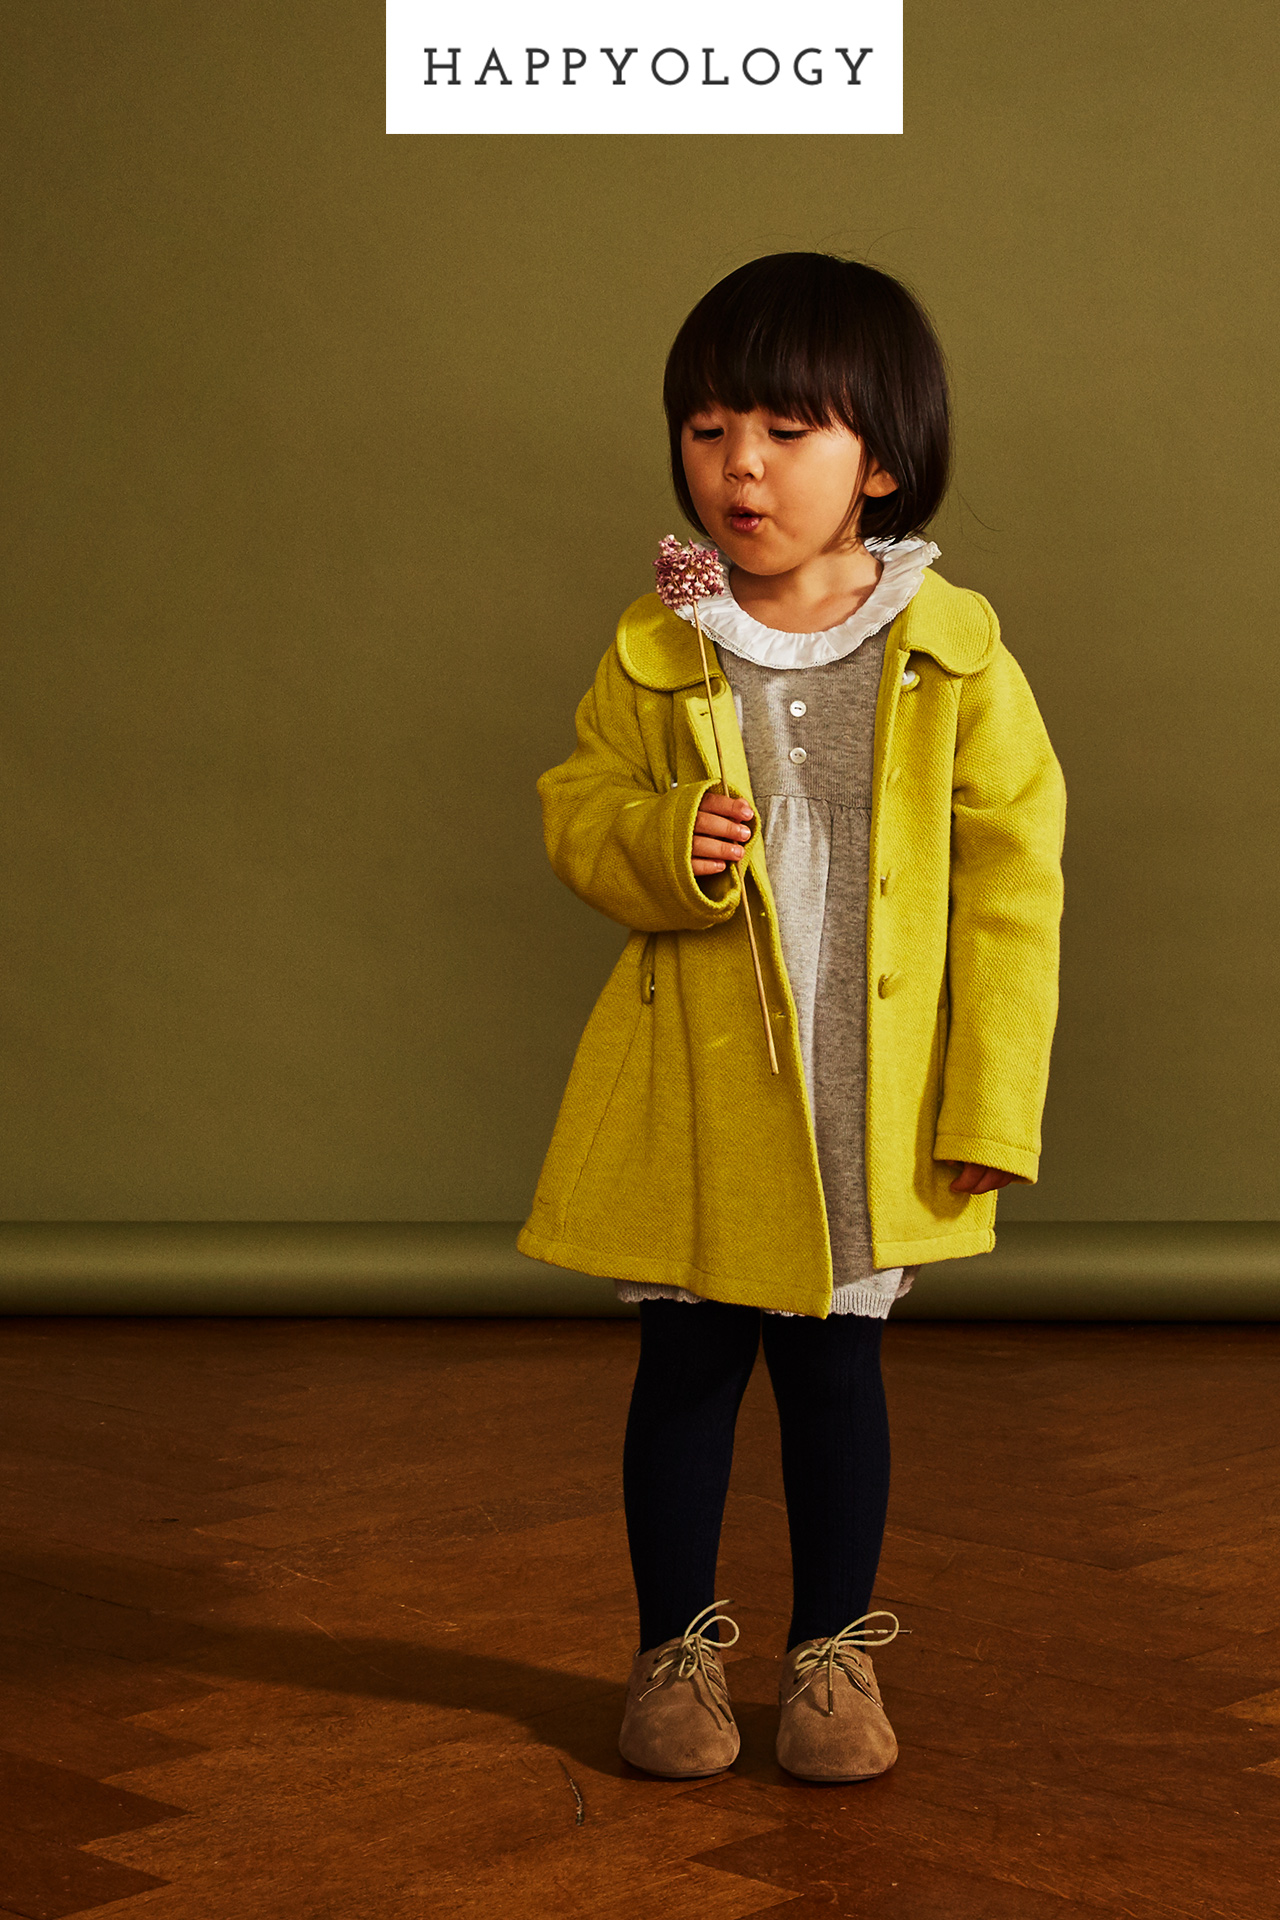 Happyology kids fashion campaign AW  2